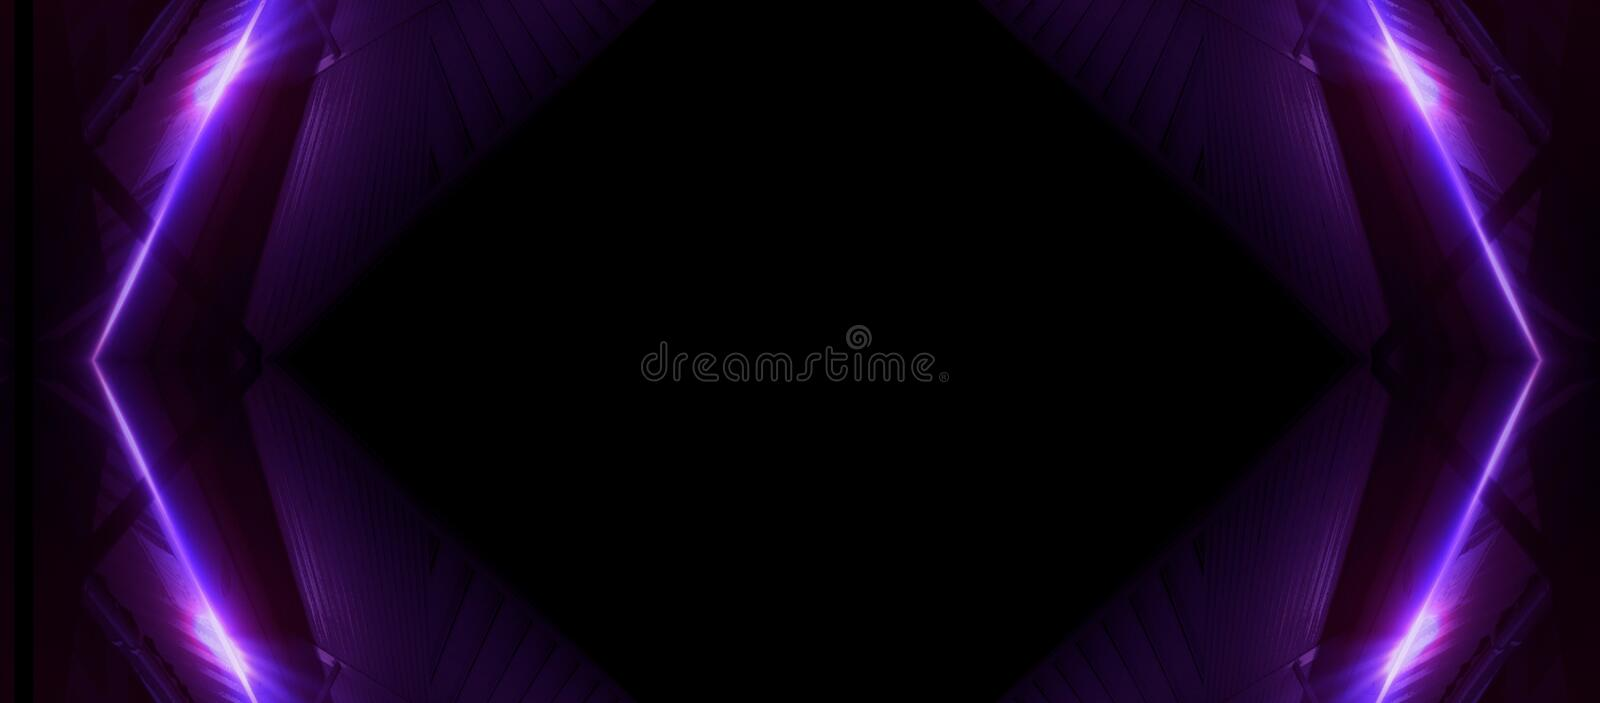 Neon lines on a dark background. Space background, lights space units. Abstract neon background, cosmic tunnels royalty free illustration